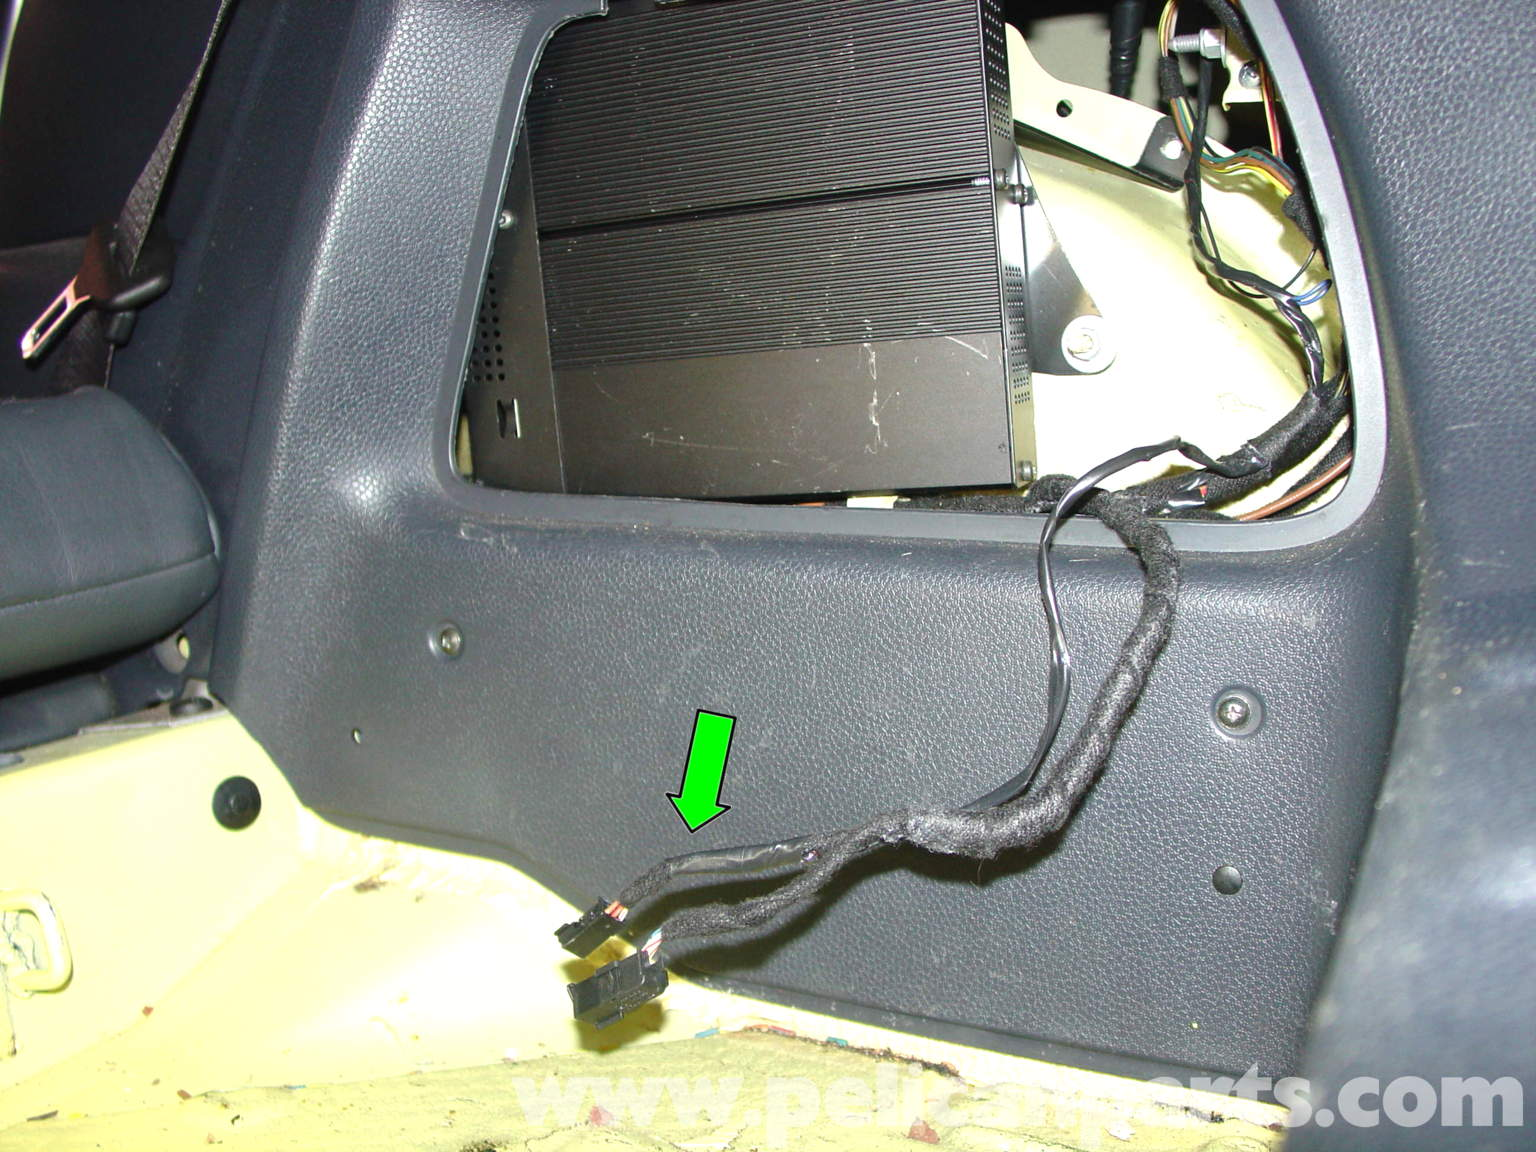 Wiring Diagram For Bmw Cd Changer : Chevy colorado stereo installation diagram autos post